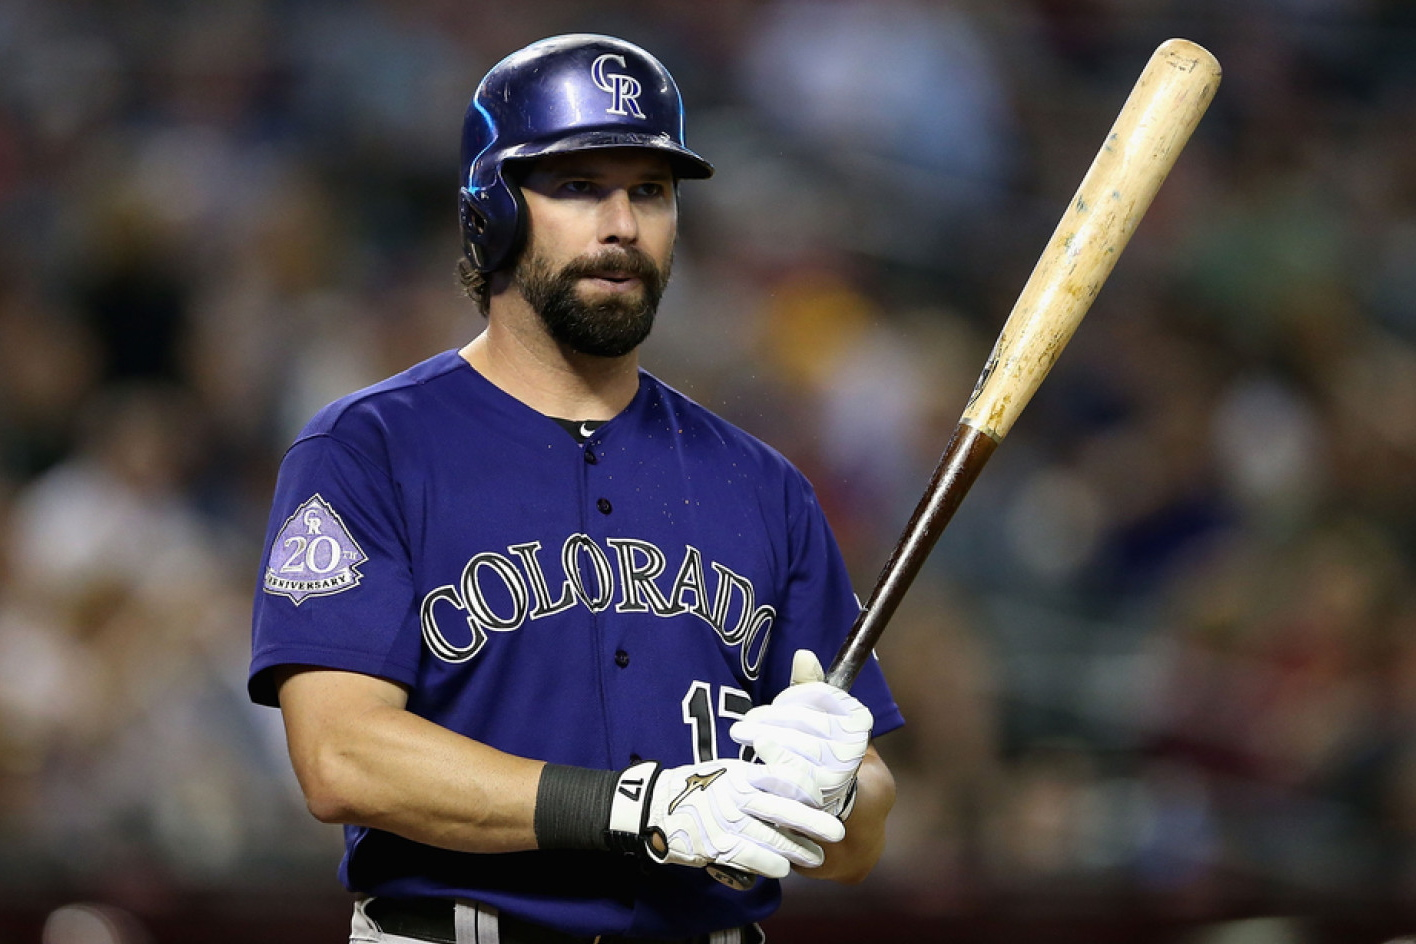 7 Todd Helton - biggest athlete retirements 2013